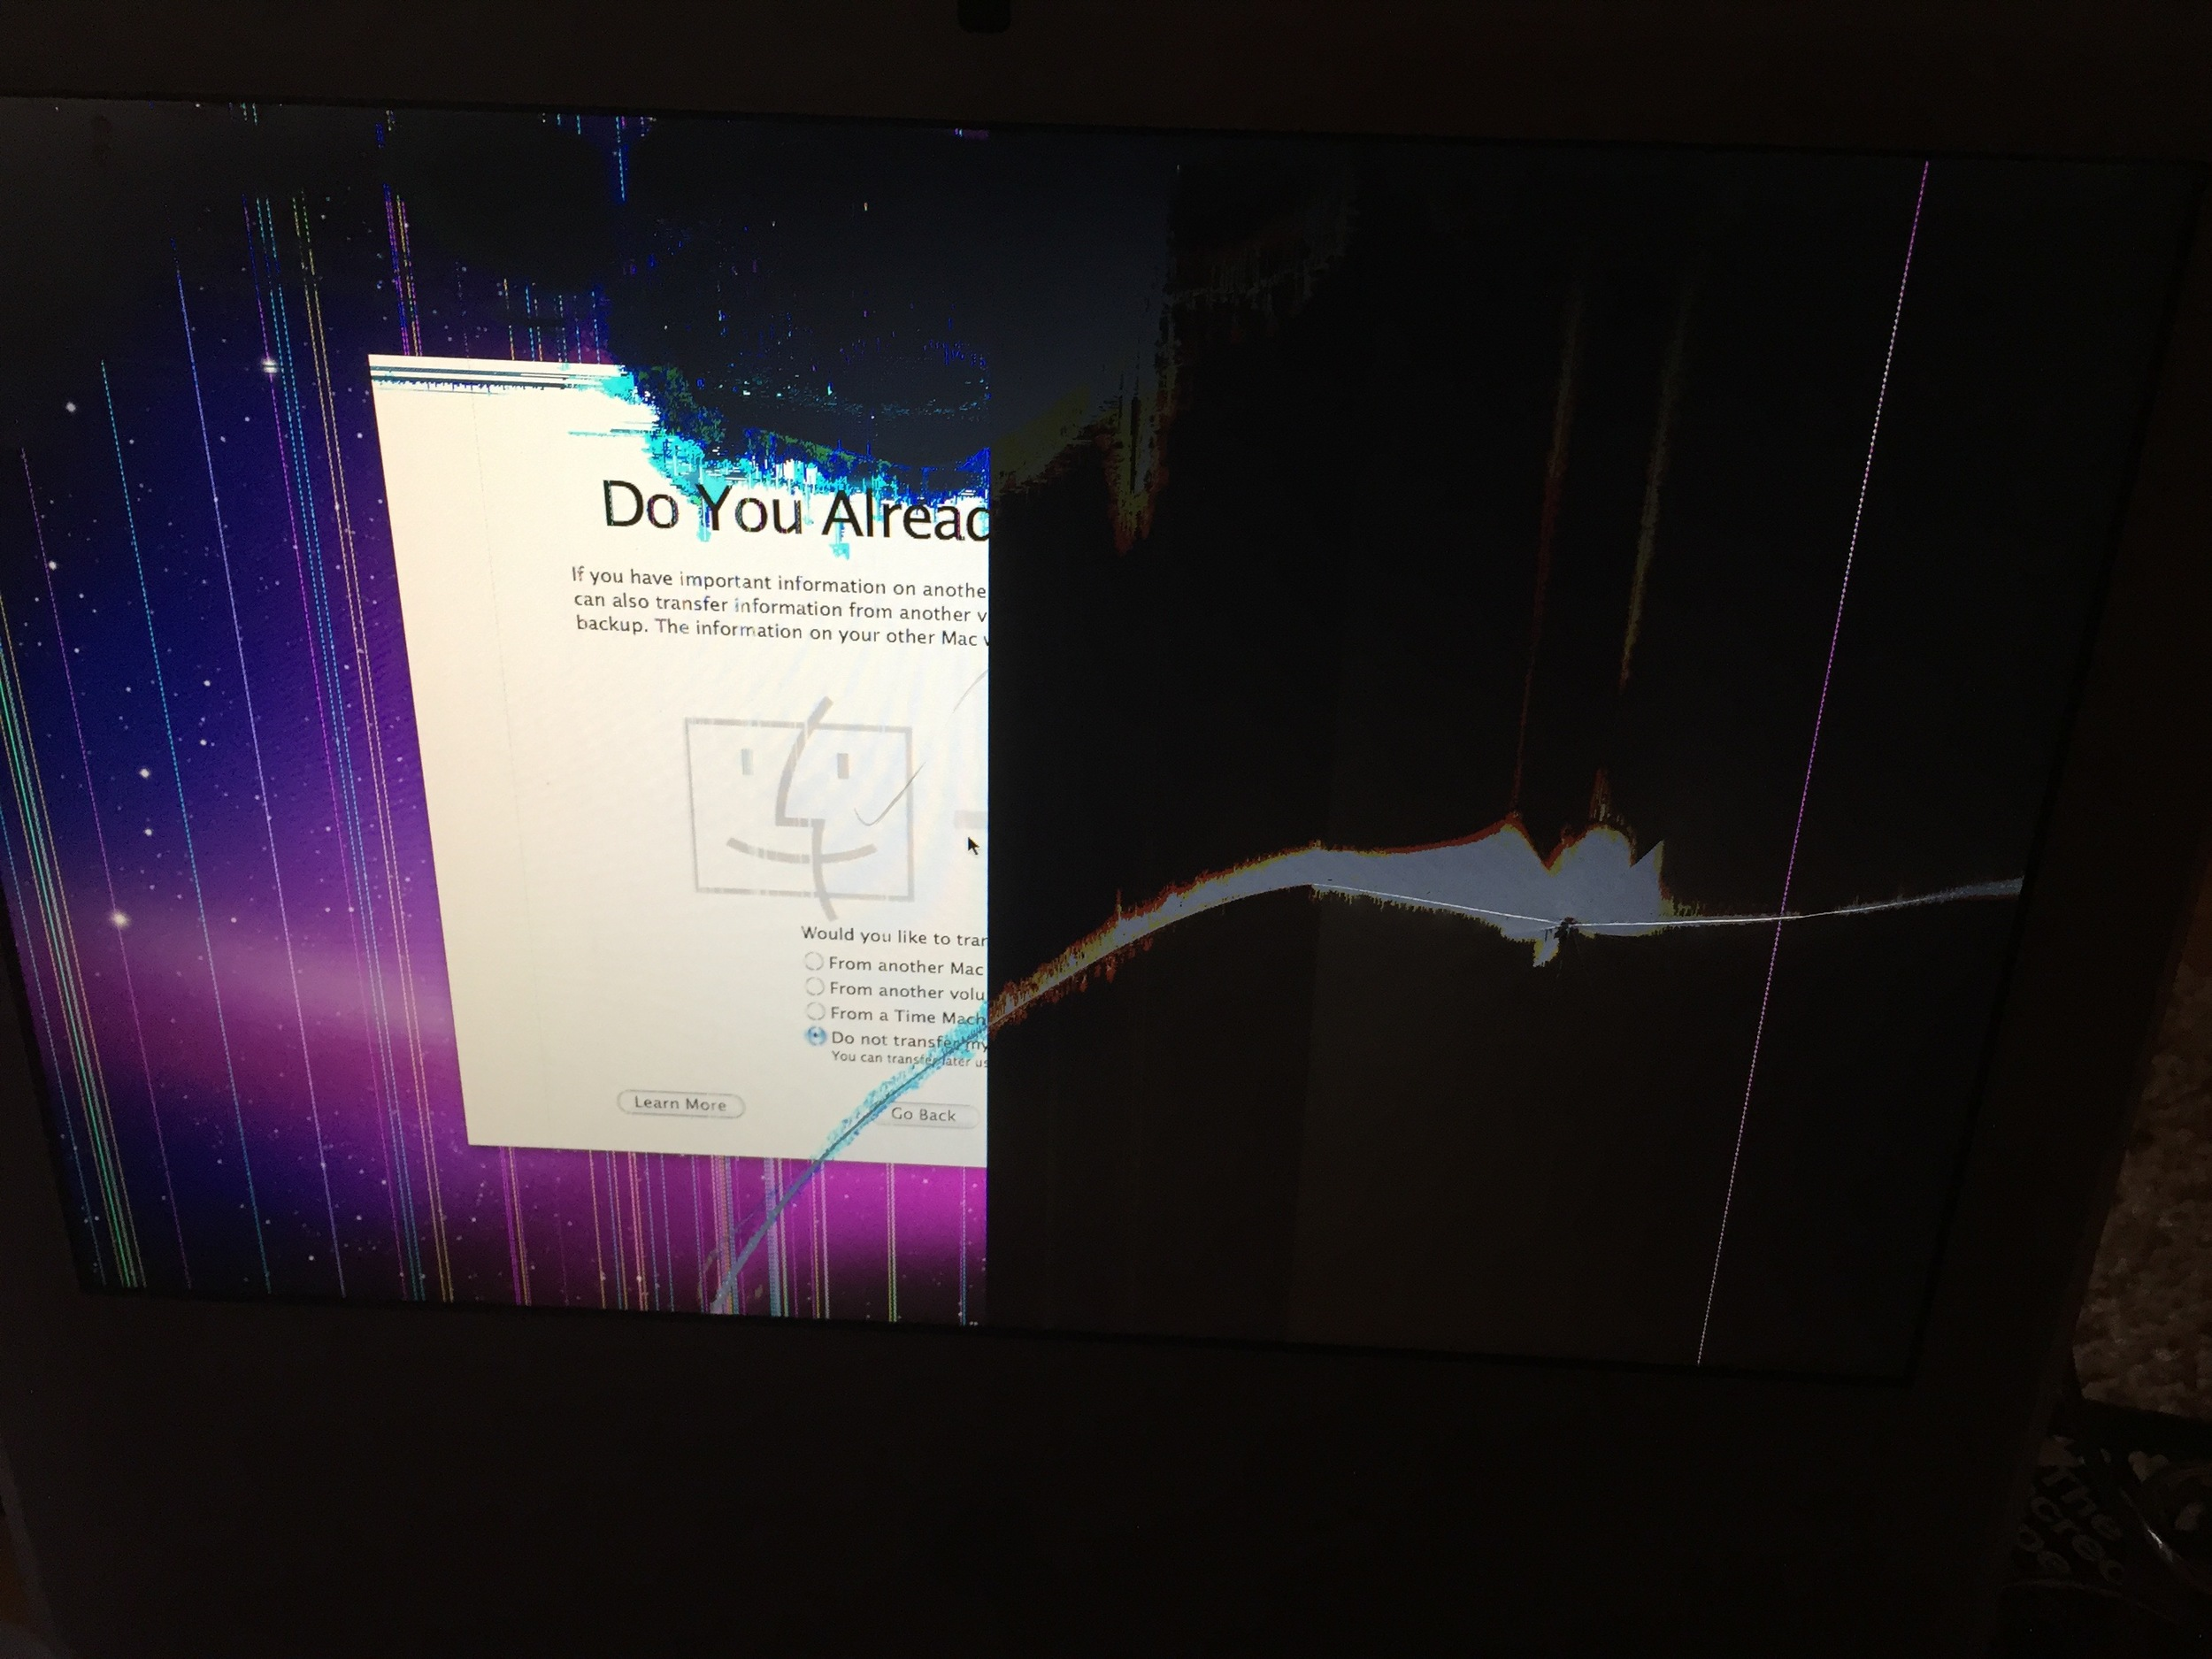 iMac with a broken display